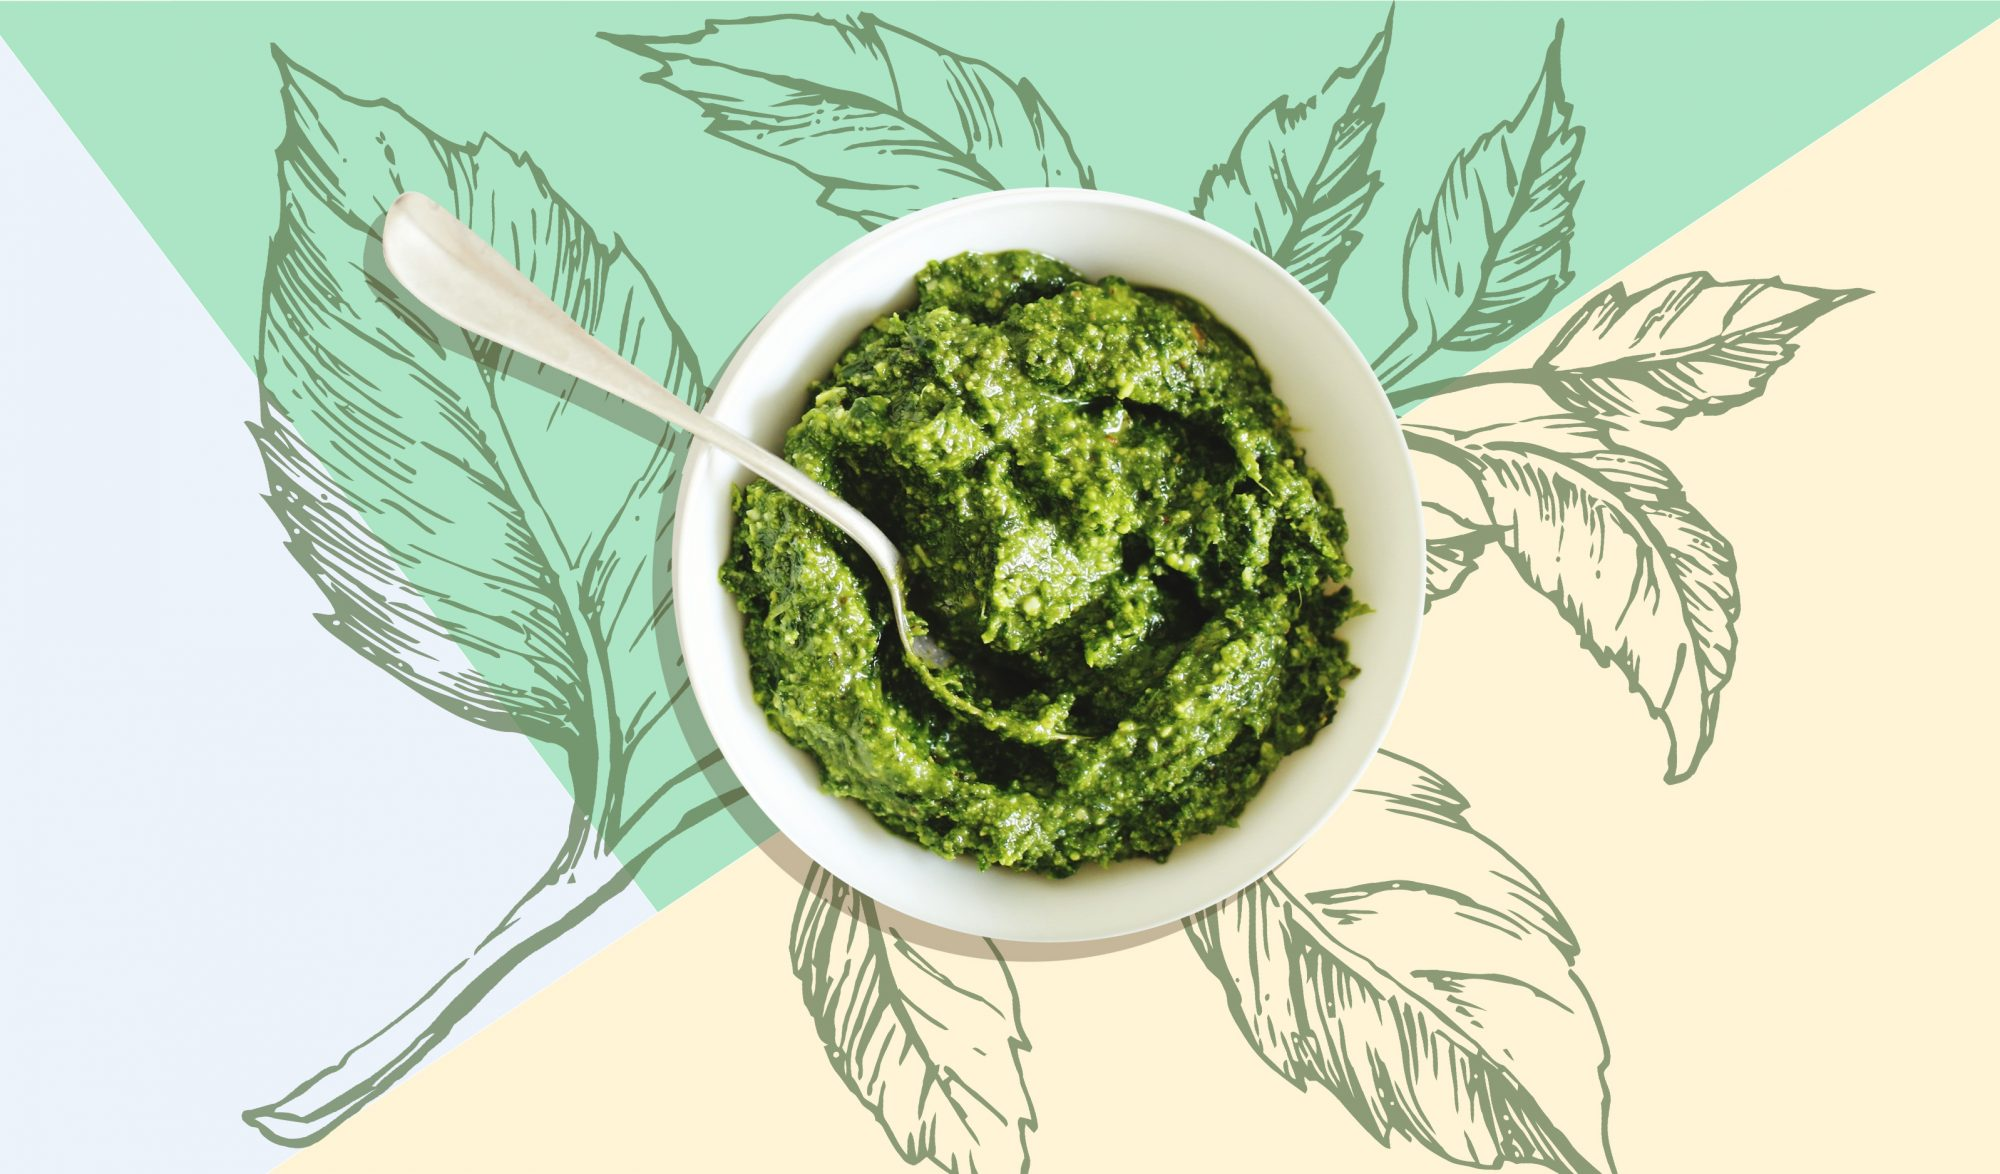 I Tried Making Pesto 3 Ways—The Best Was the Most Basic